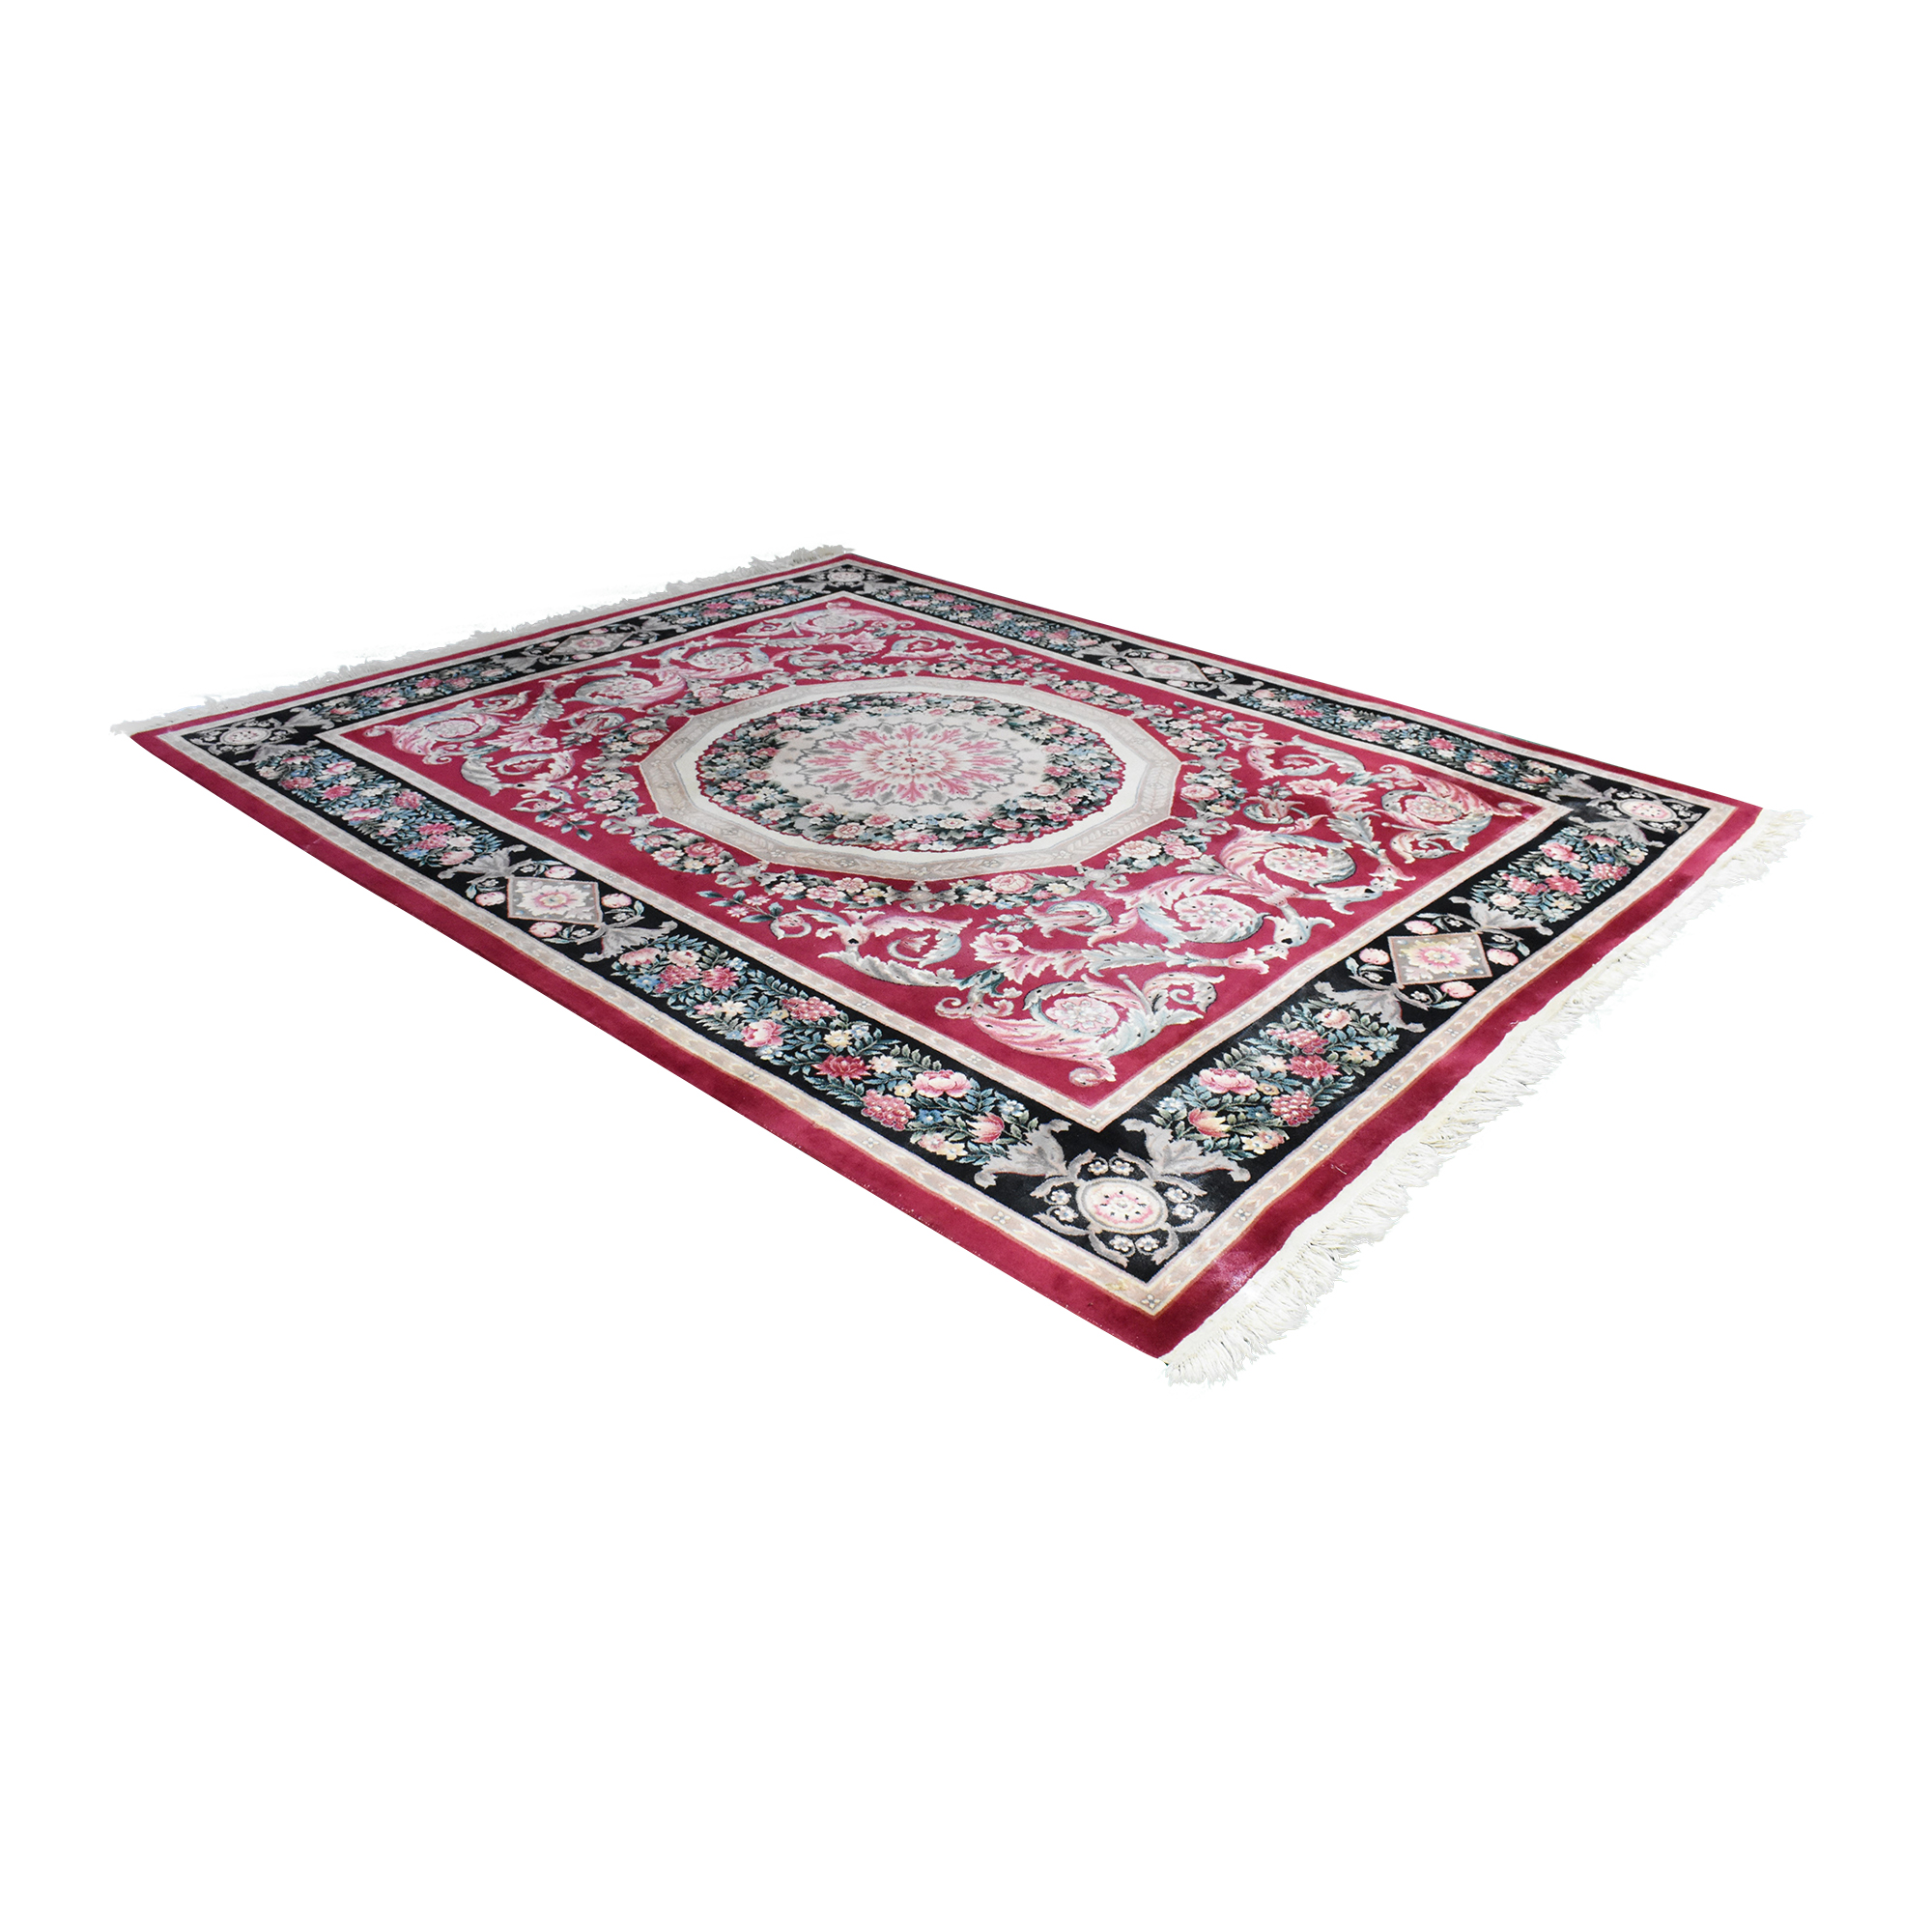 buy ABC Carpet & Home ABC Carpet & Home Classic Patterned Rug online